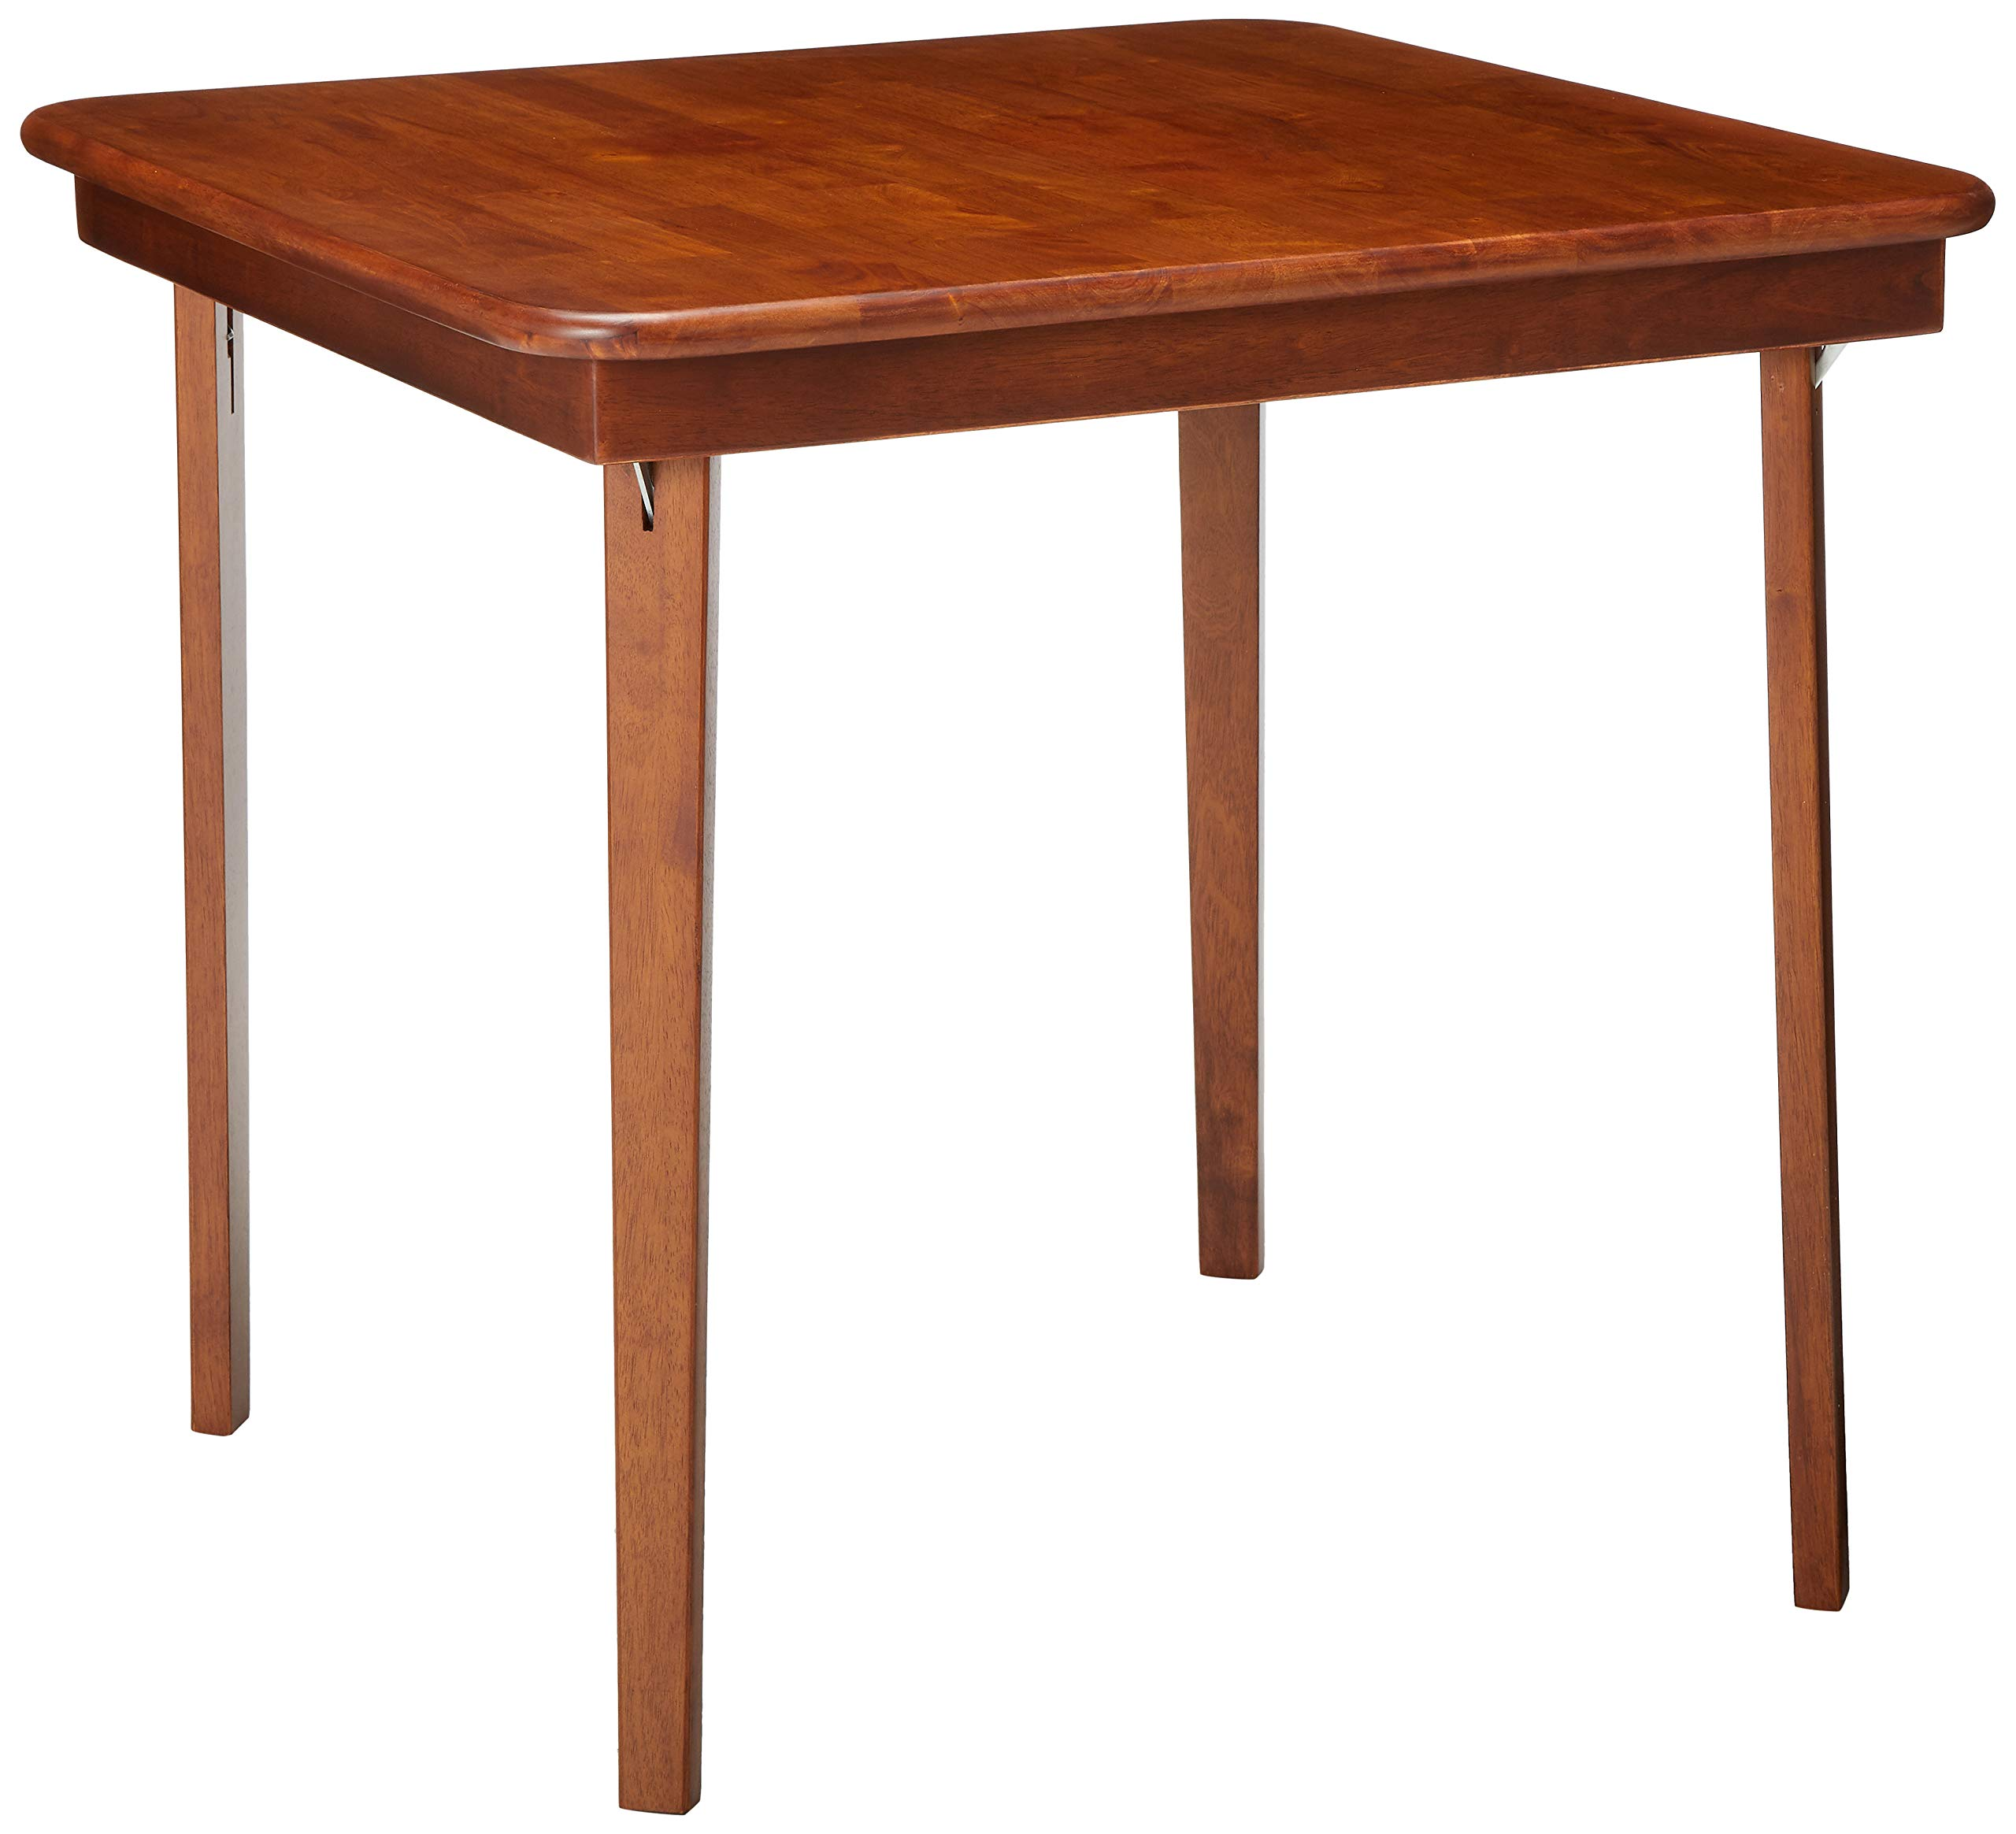 MECO 0056.00791 STAKMORE Straight Edge Folding Card Table Cherry Finish, by MECO